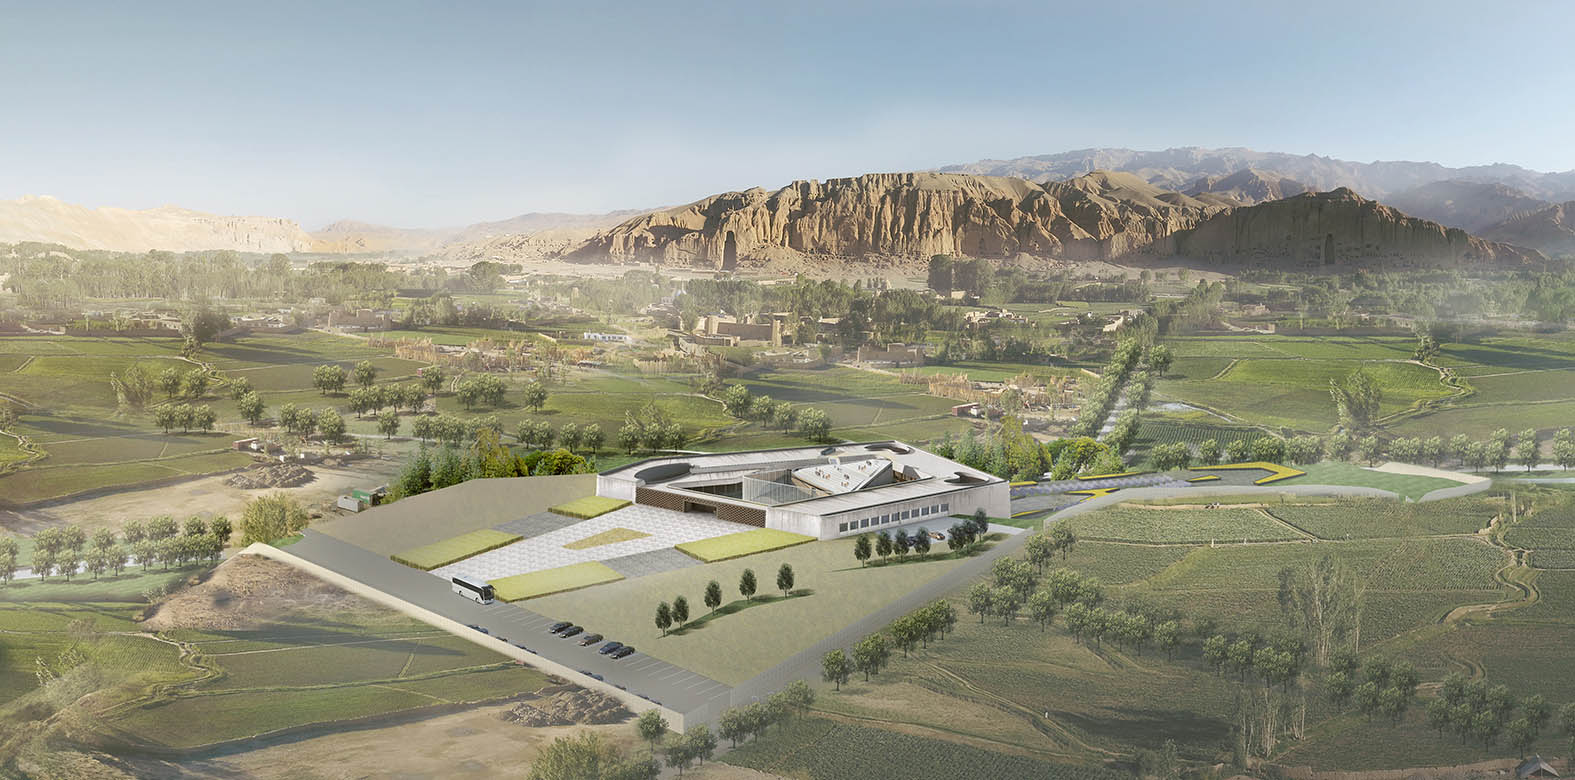 Bamiyan Cultural Center In Afghanistan